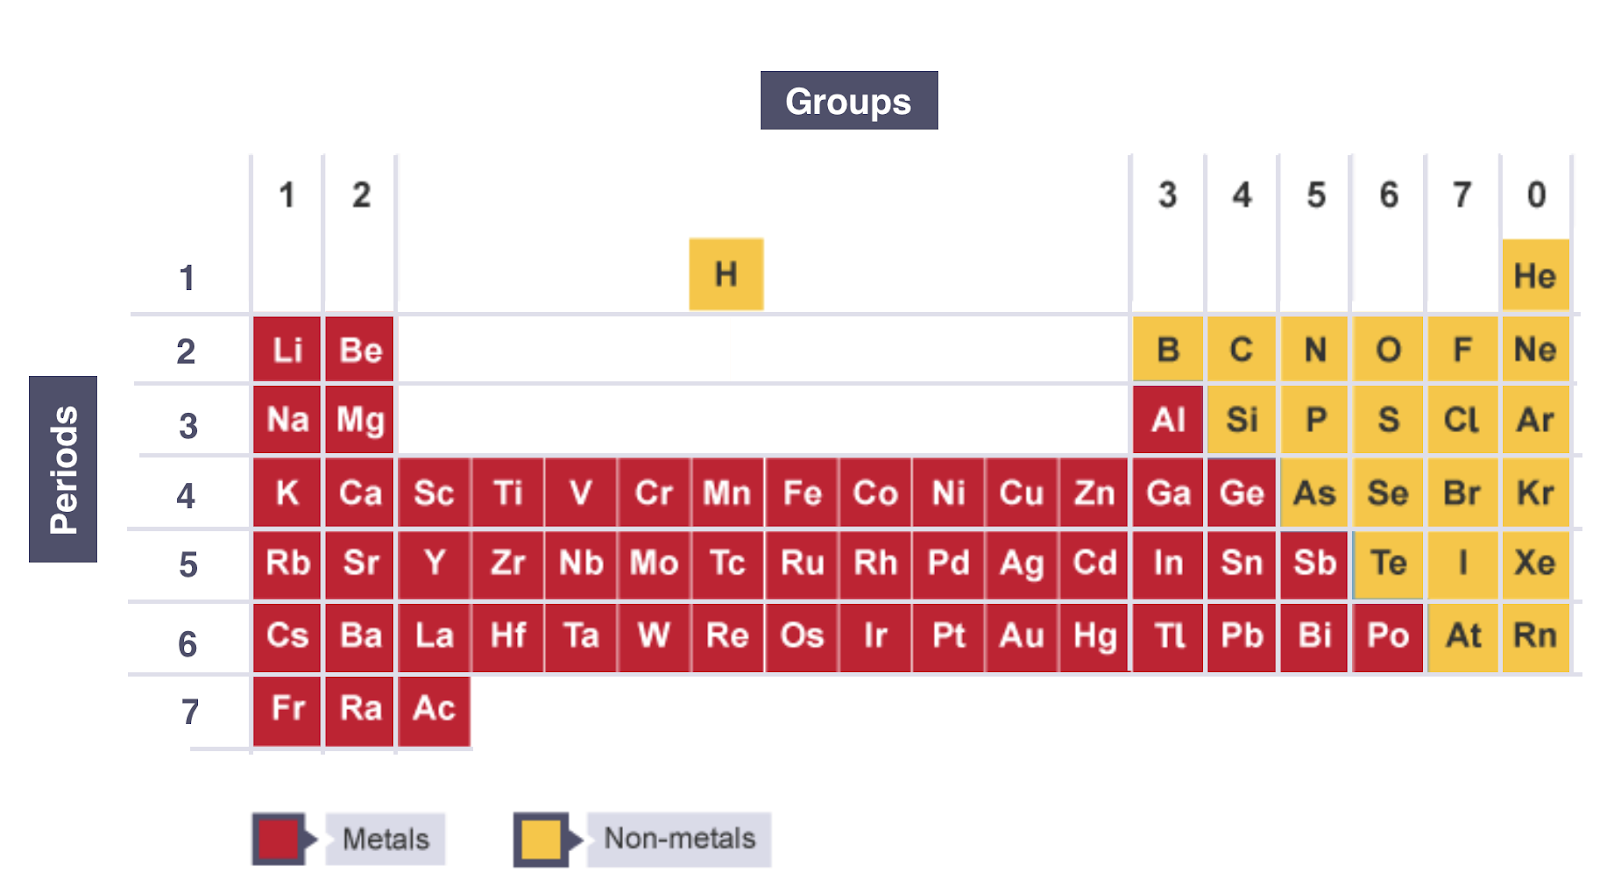 Igcse chemistry 2017 118 understand how elements are arranged in the periodic table all elements are arranged in the order of increasing atomic number urtaz